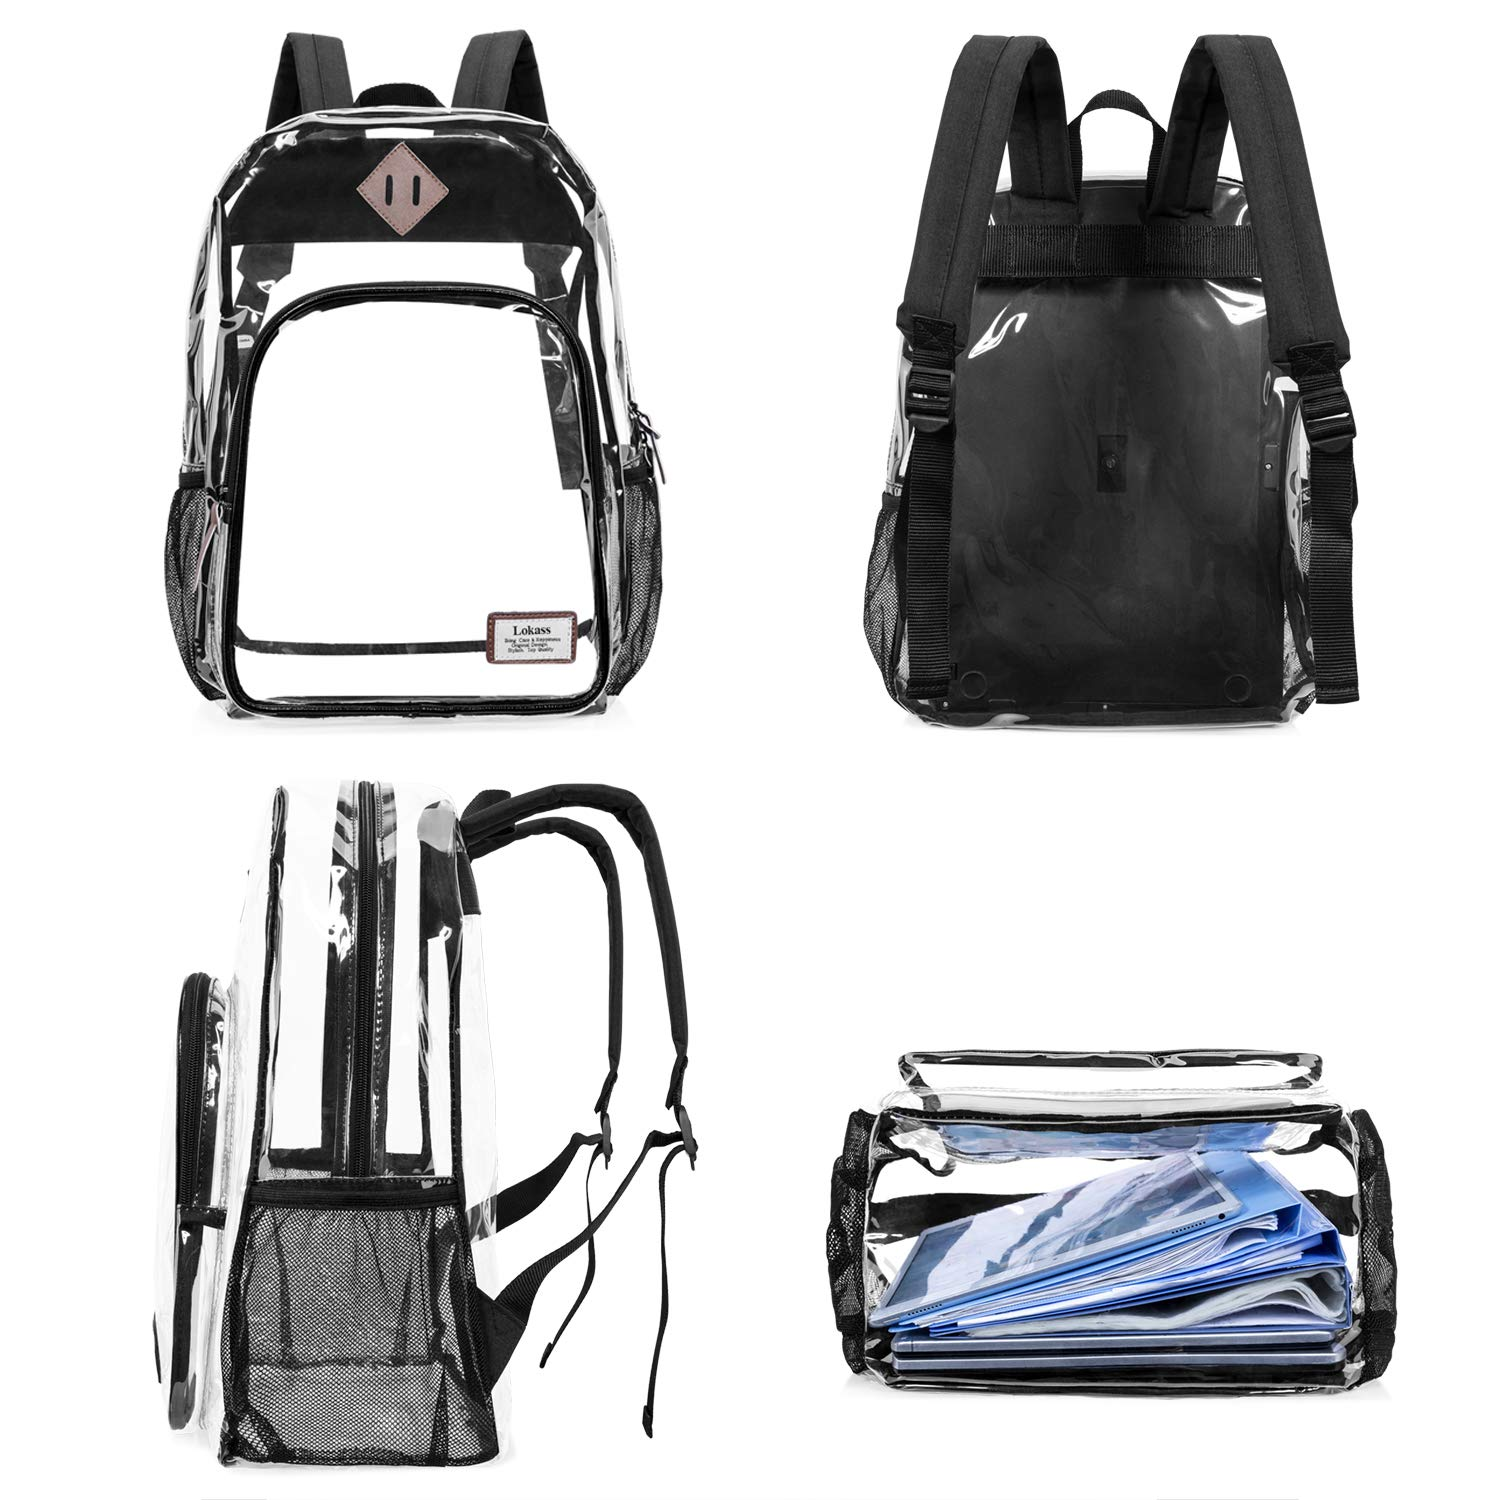 4b78d79b9653 NiceEbag Clear School Backpack Heavy Duty Clear Bookbag Large See Through  Backpack for Teen Girls Boys larger image